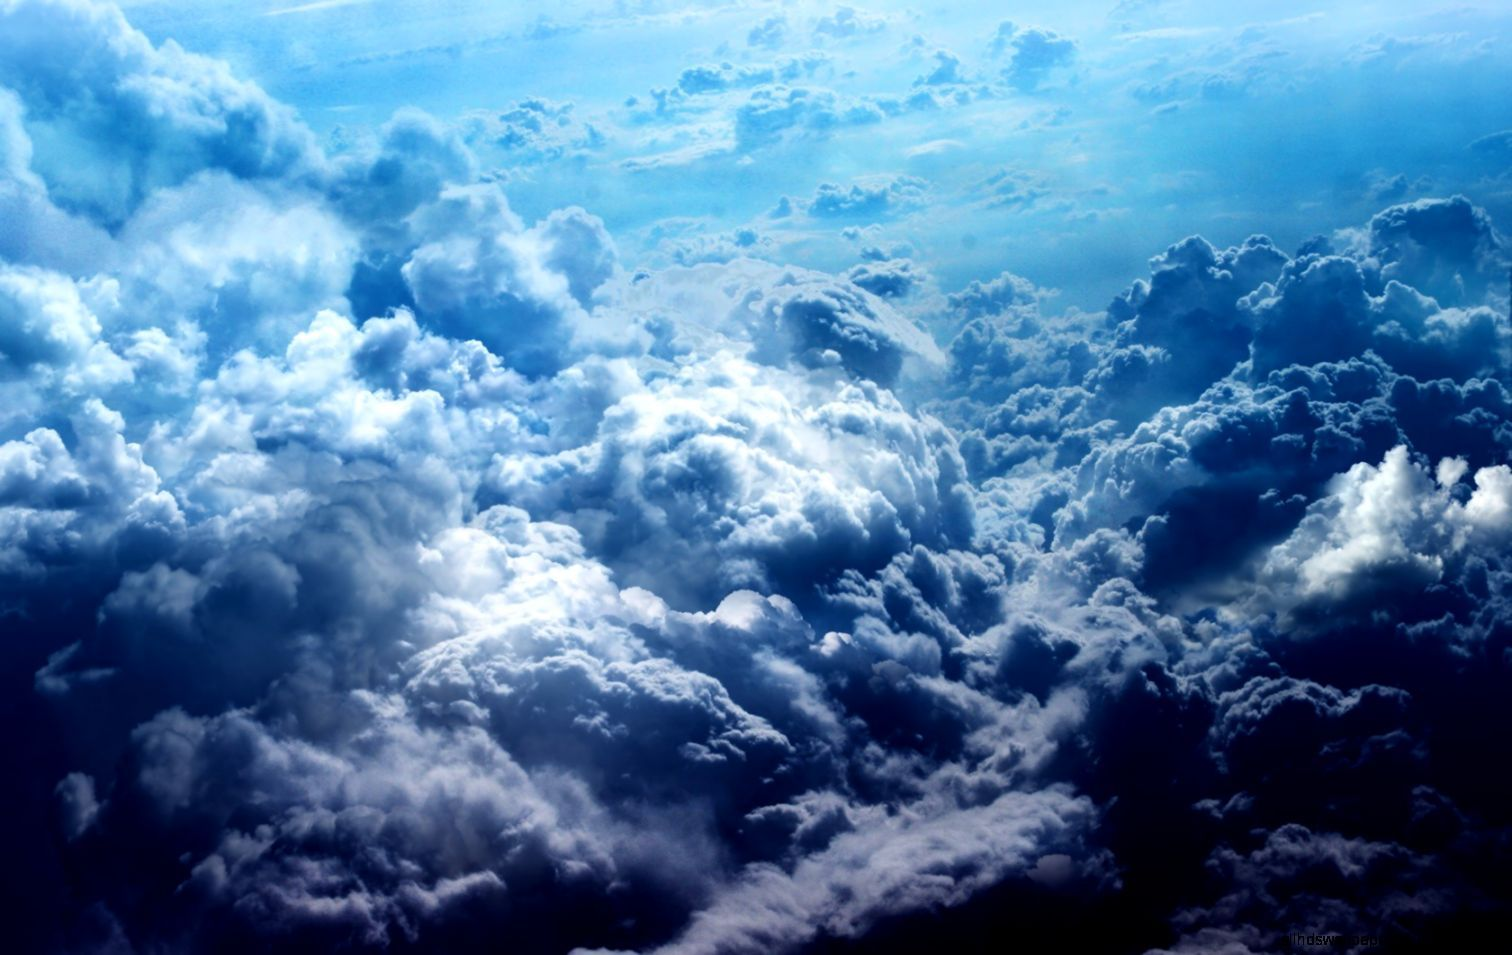 Clouds Desktop Wallpaper Hd Clouds Sky And Clouds Blue Sky Clouds